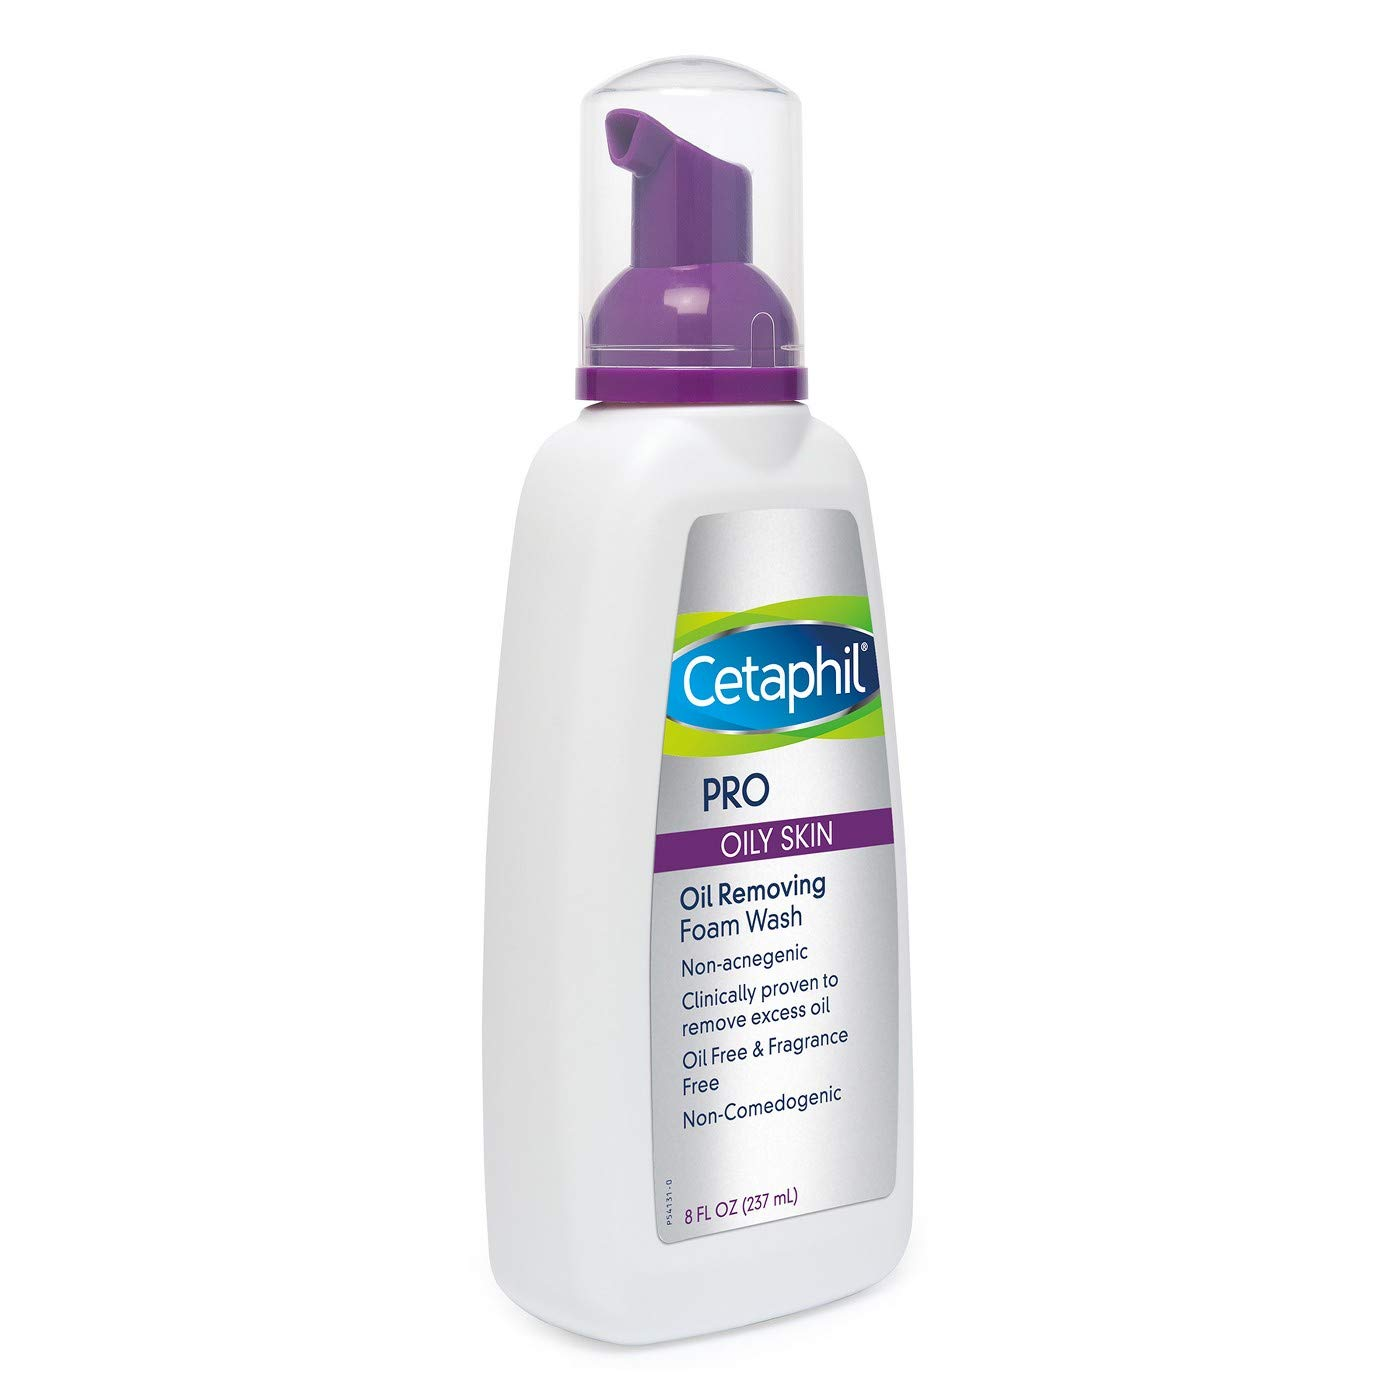 Cetaphil PRO DermaControl Oil Removing Foam Wash 8 oz - Packaging May Vary